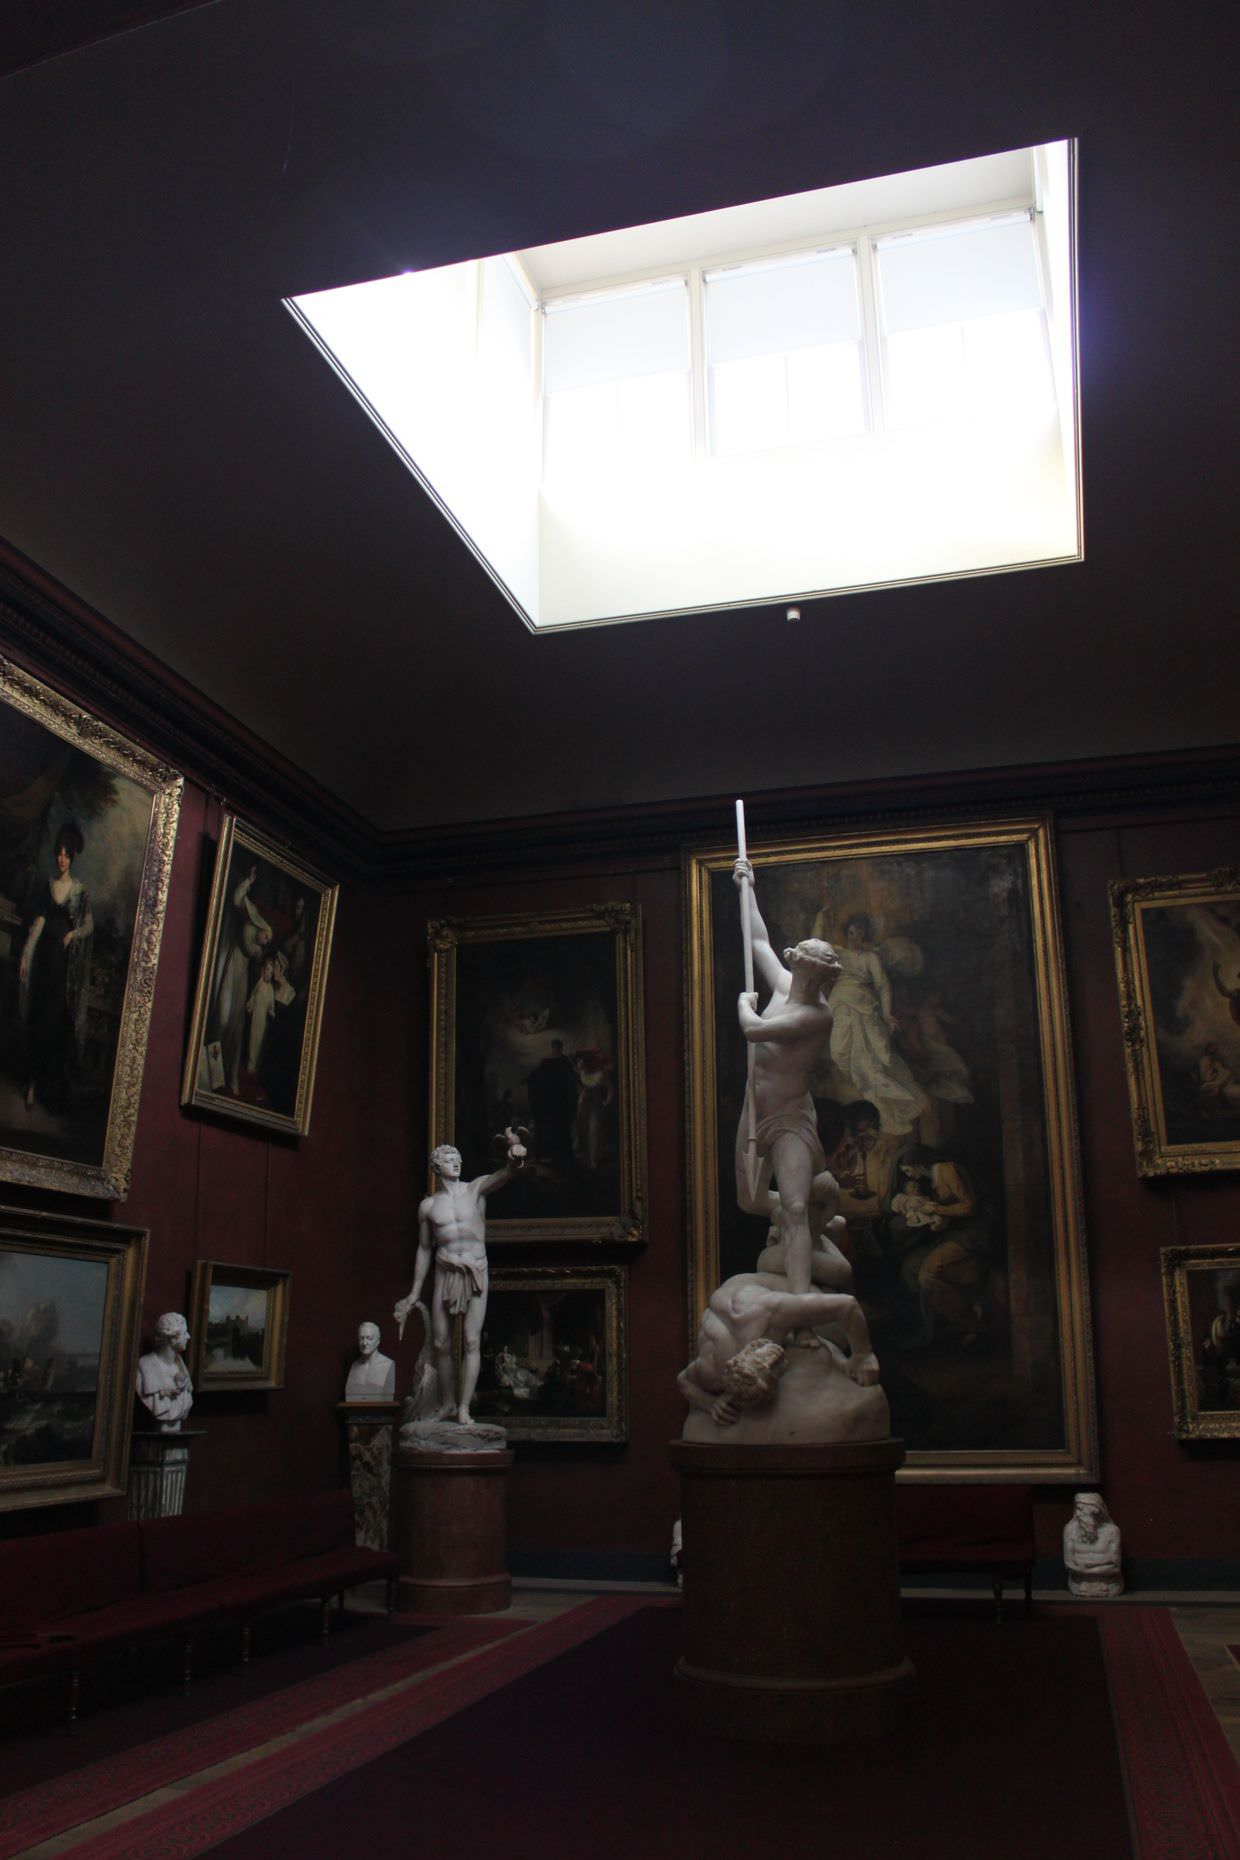 Gallery and sculptures in Petworth house